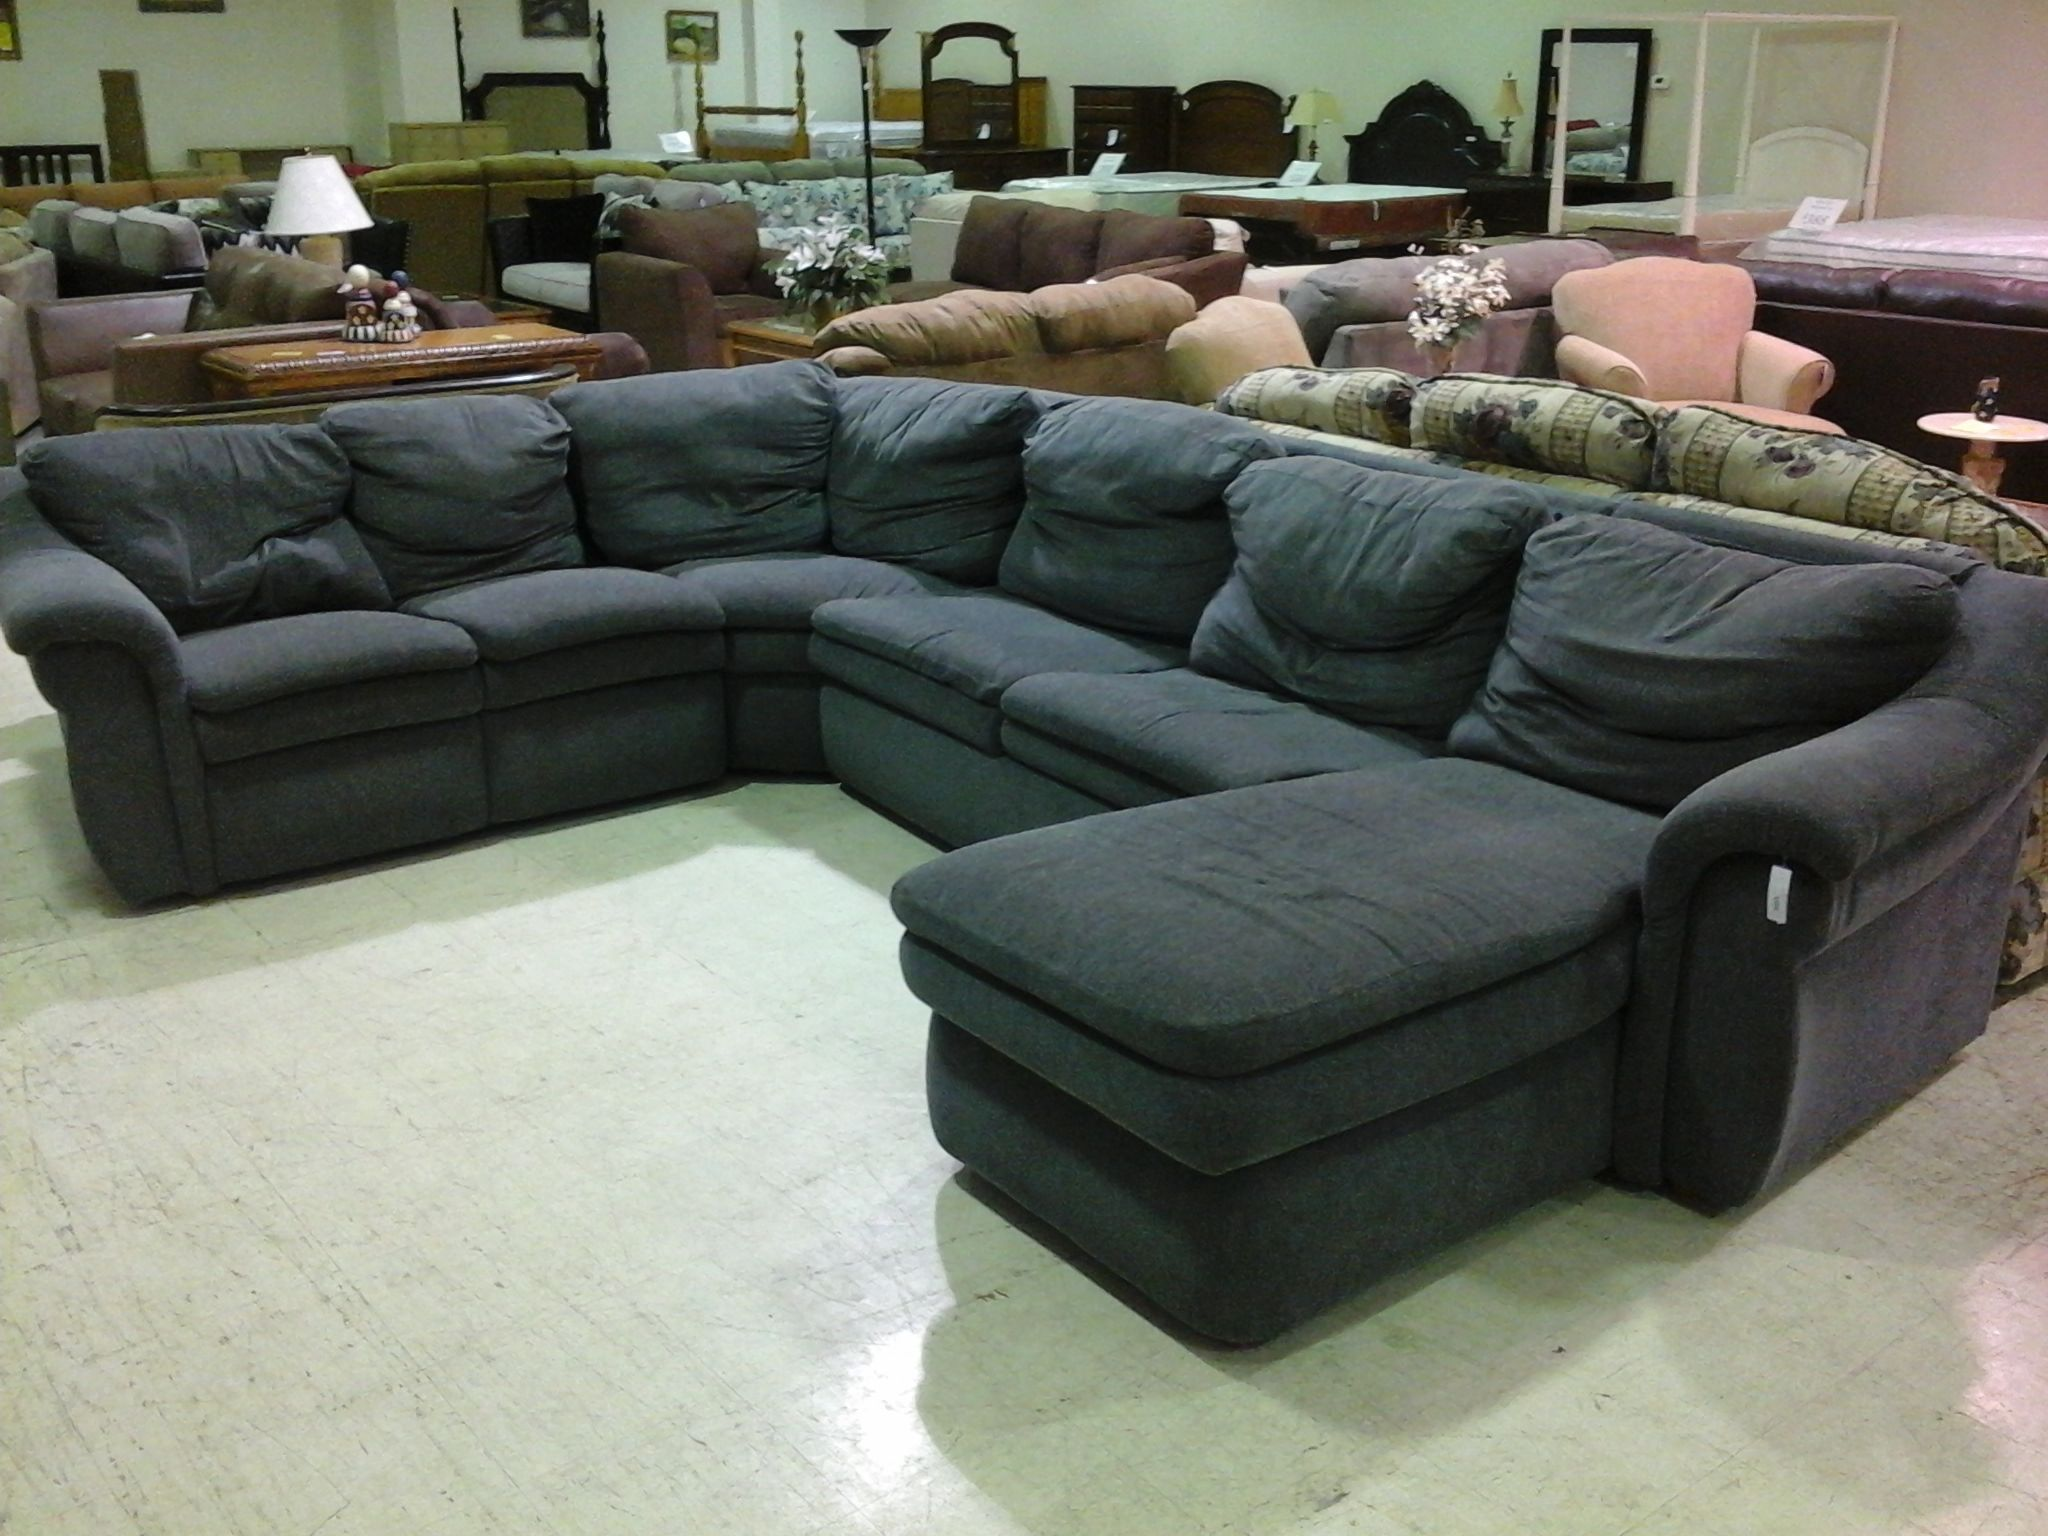 Microfiber Sectional Sofa With Sleeper : microfiber sectional sleeper sofa - Sectionals, Sofas & Couches